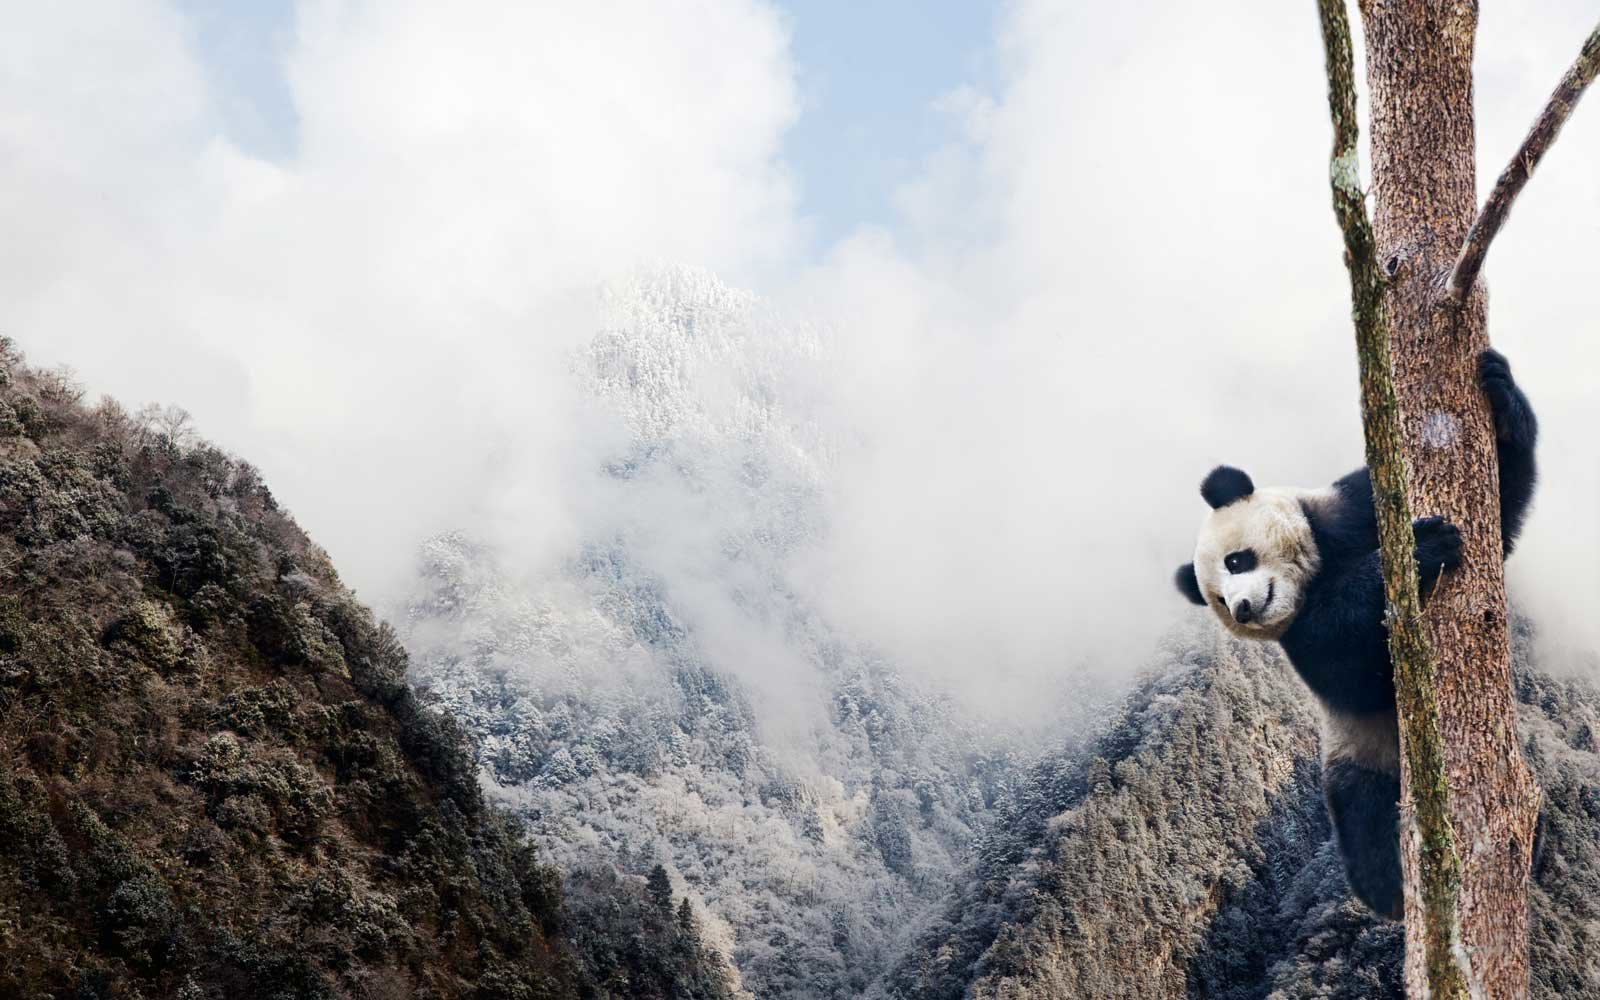 A giant panda climbing a tree in the mountains of China